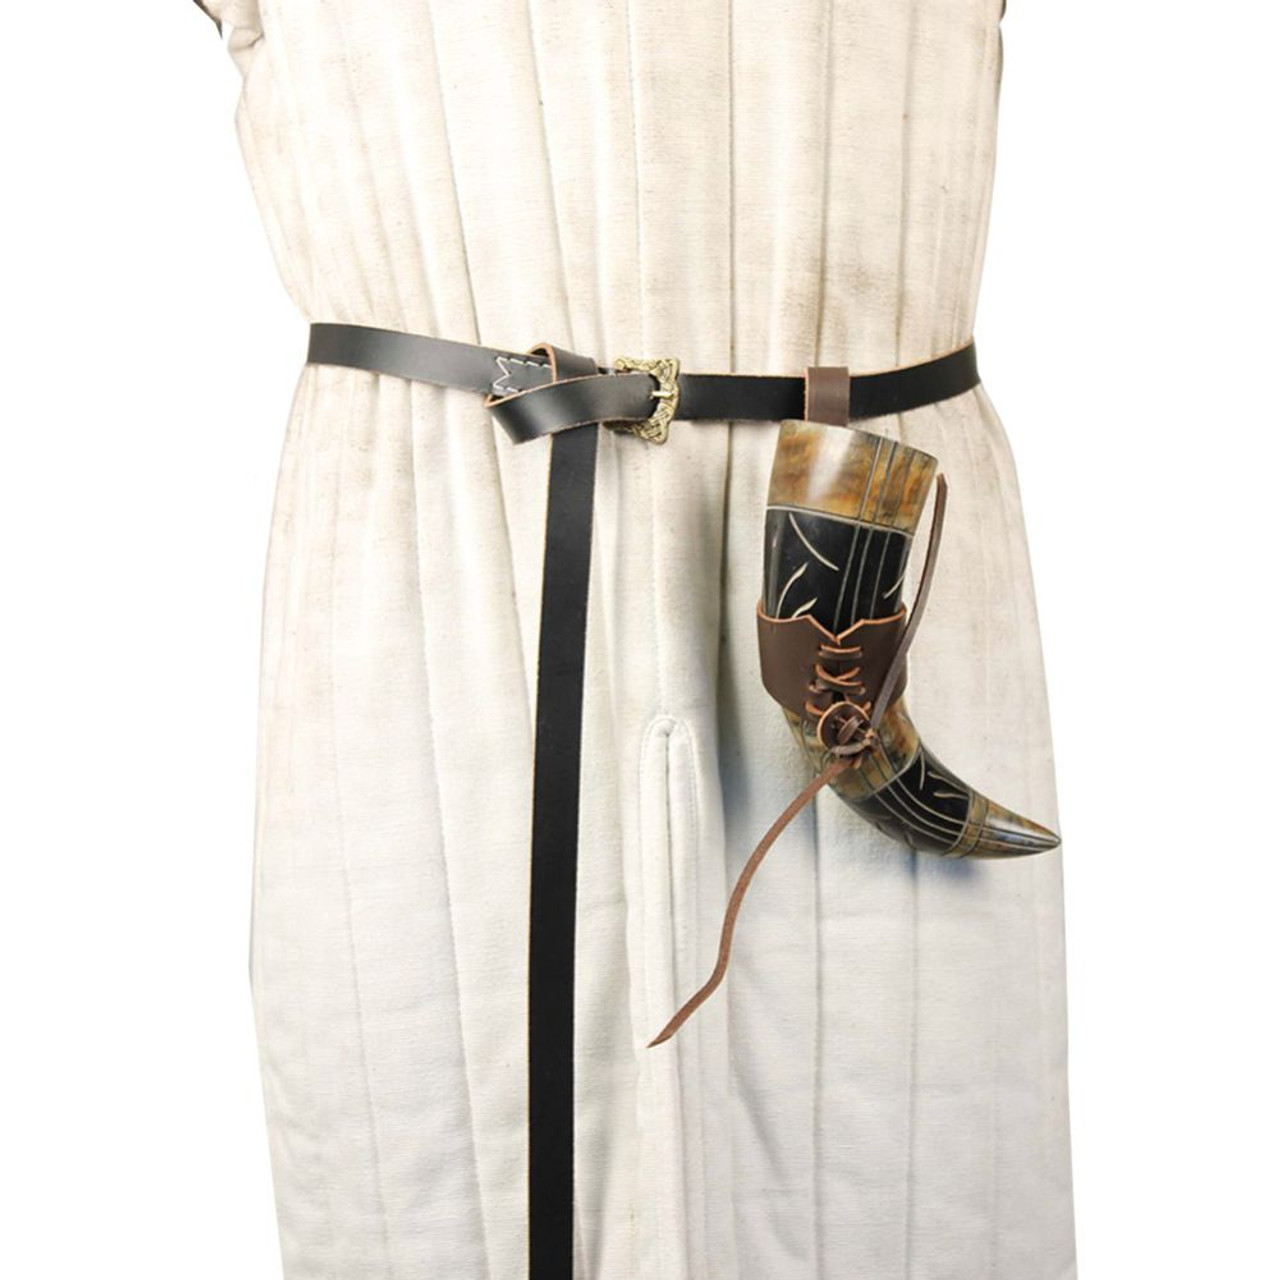 Muses Mead Drinking Horn